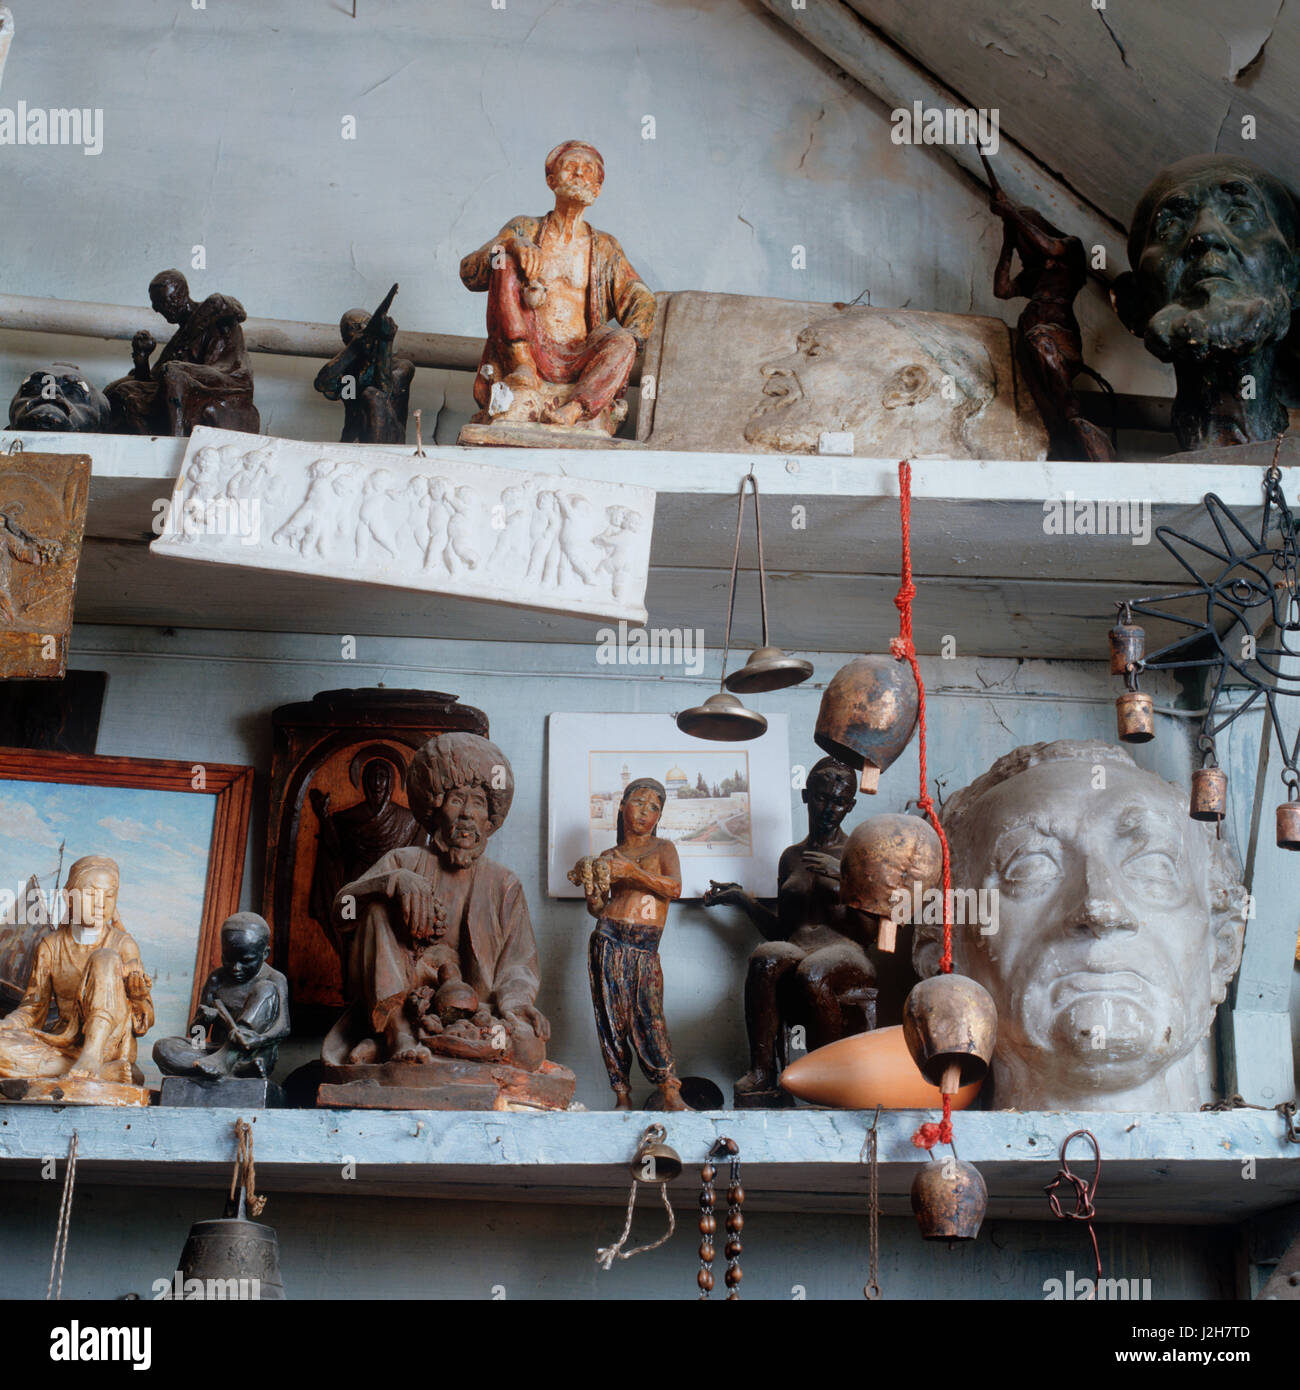 Shelves of figurines. - Stock Image